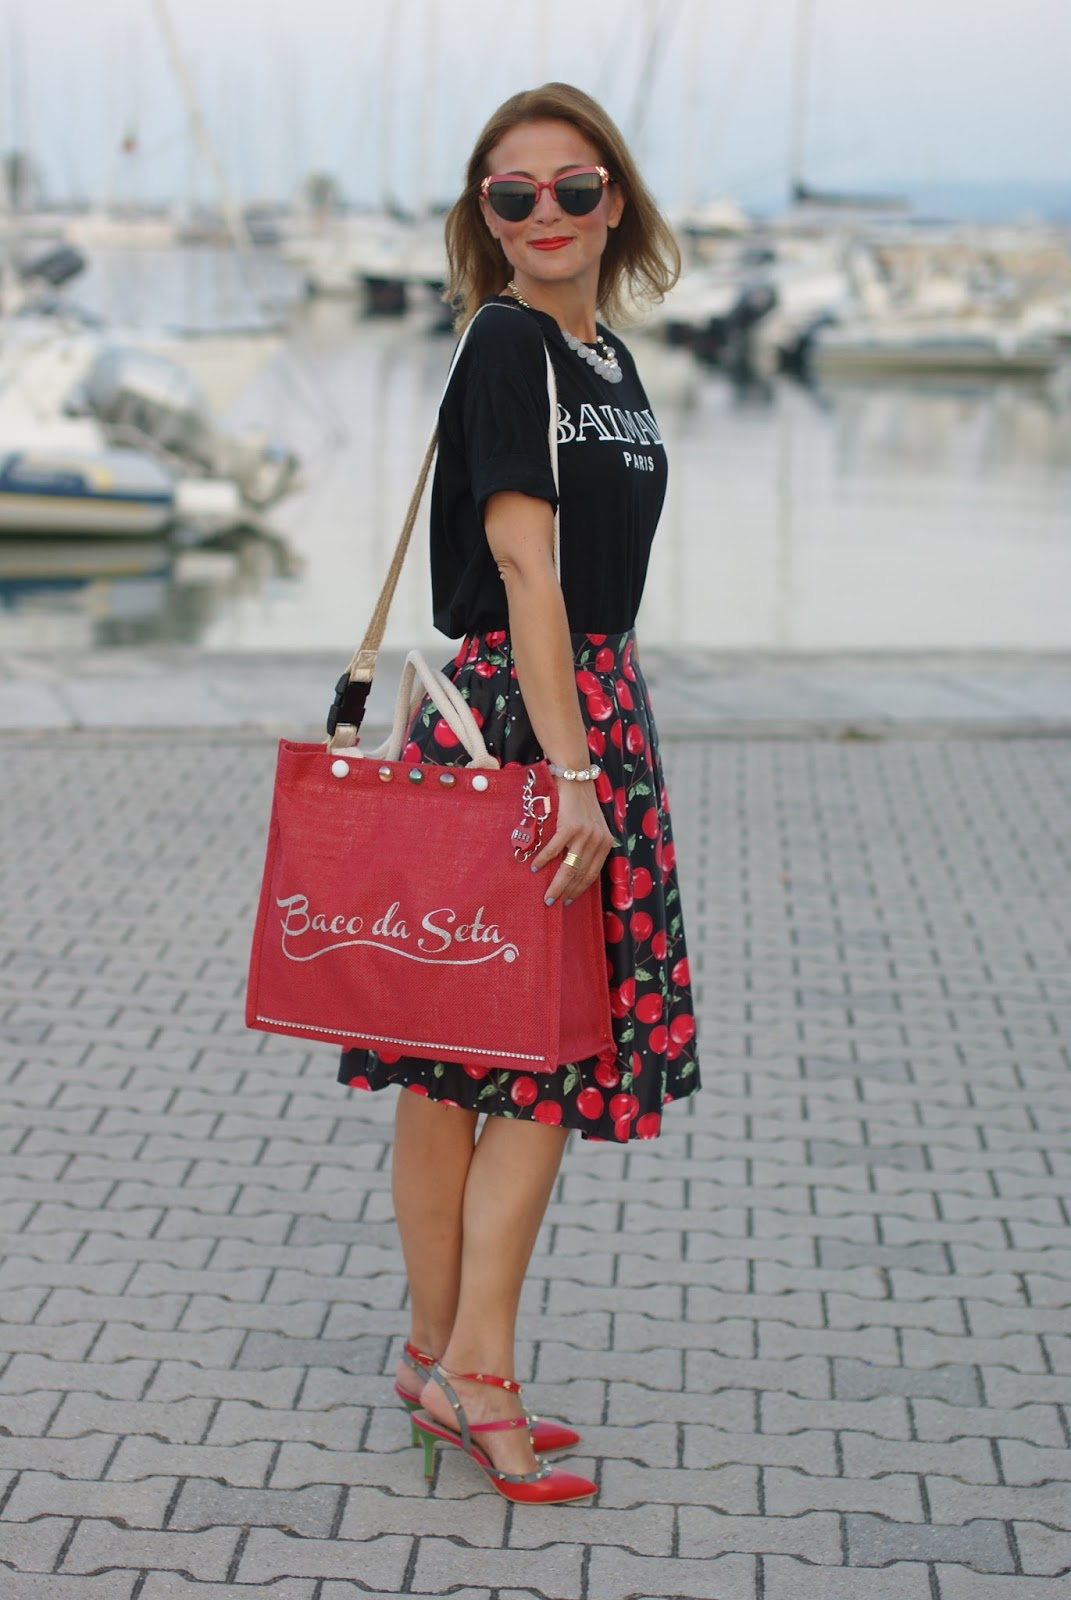 rockstud shoes and cherrty print midi skirt on Fashion and Cookies fashion blog